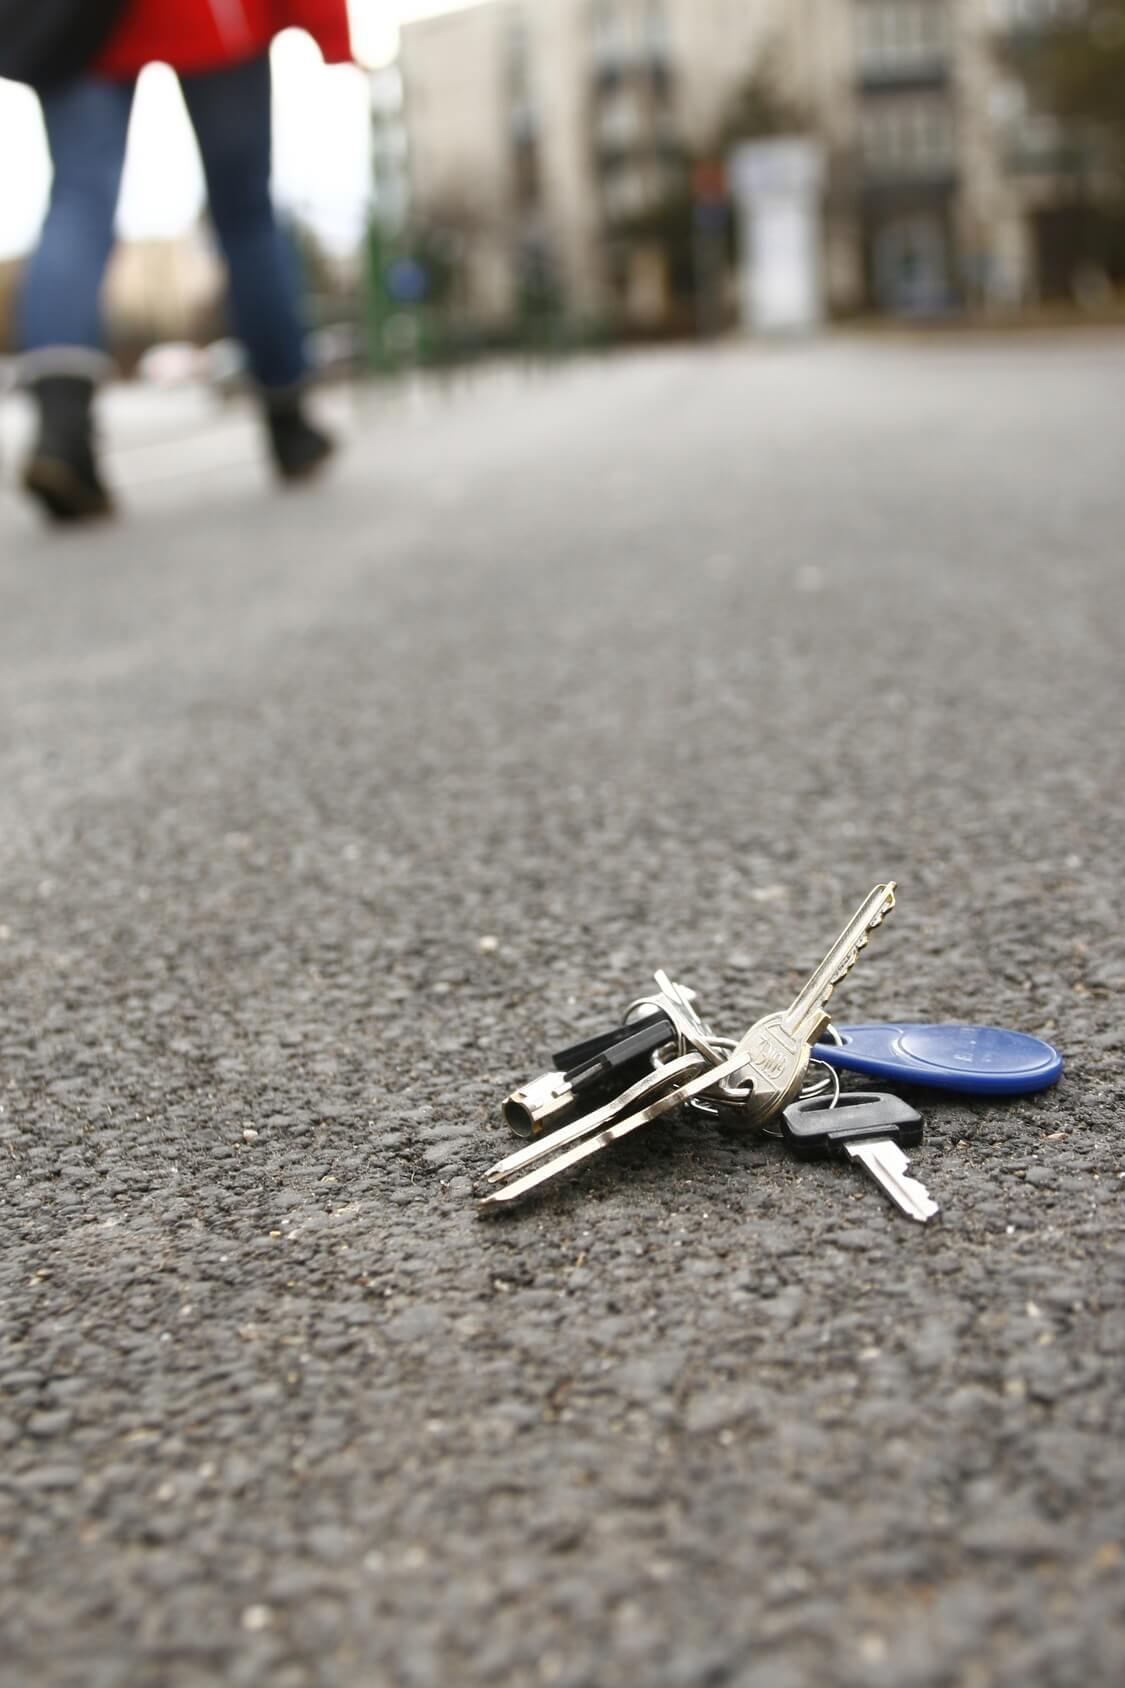 How To Get A Car Key When Lost